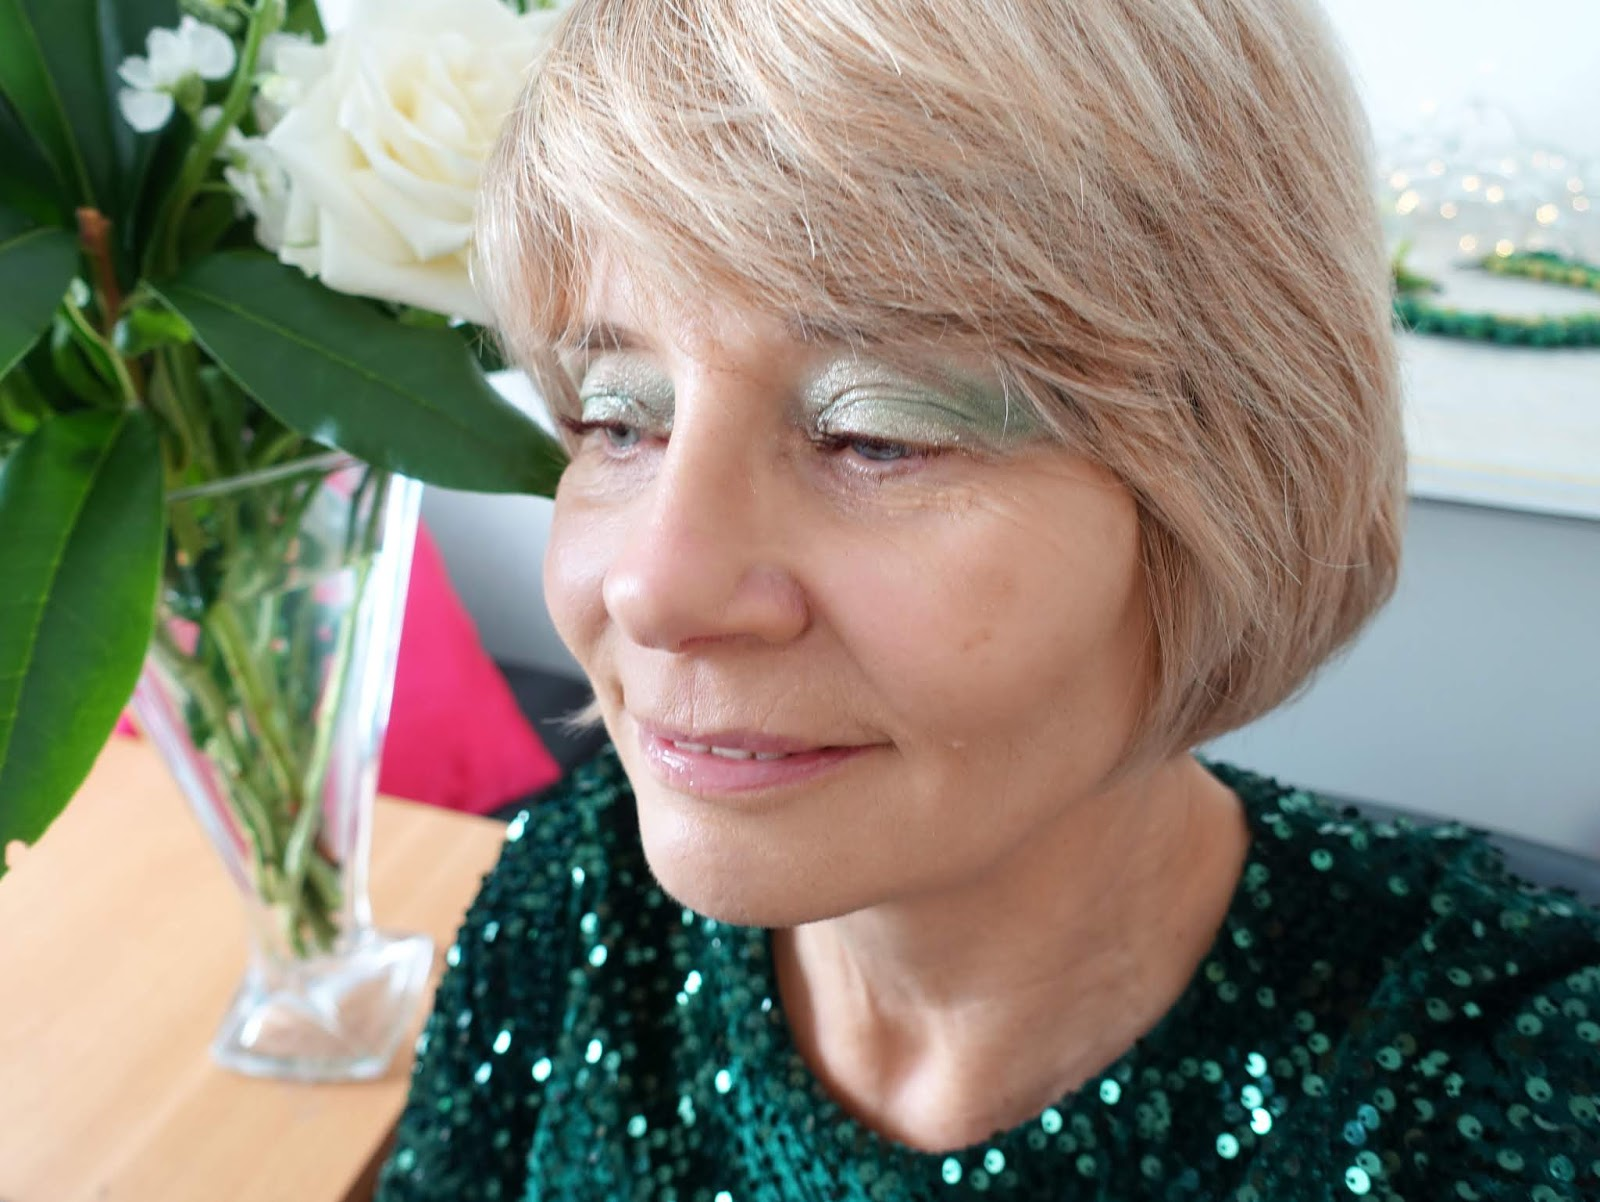 Over 40s blogger Gail Hanlon shows off green eye lids created with the Huda Beauty Emerald Obsessions eyeshadow palette